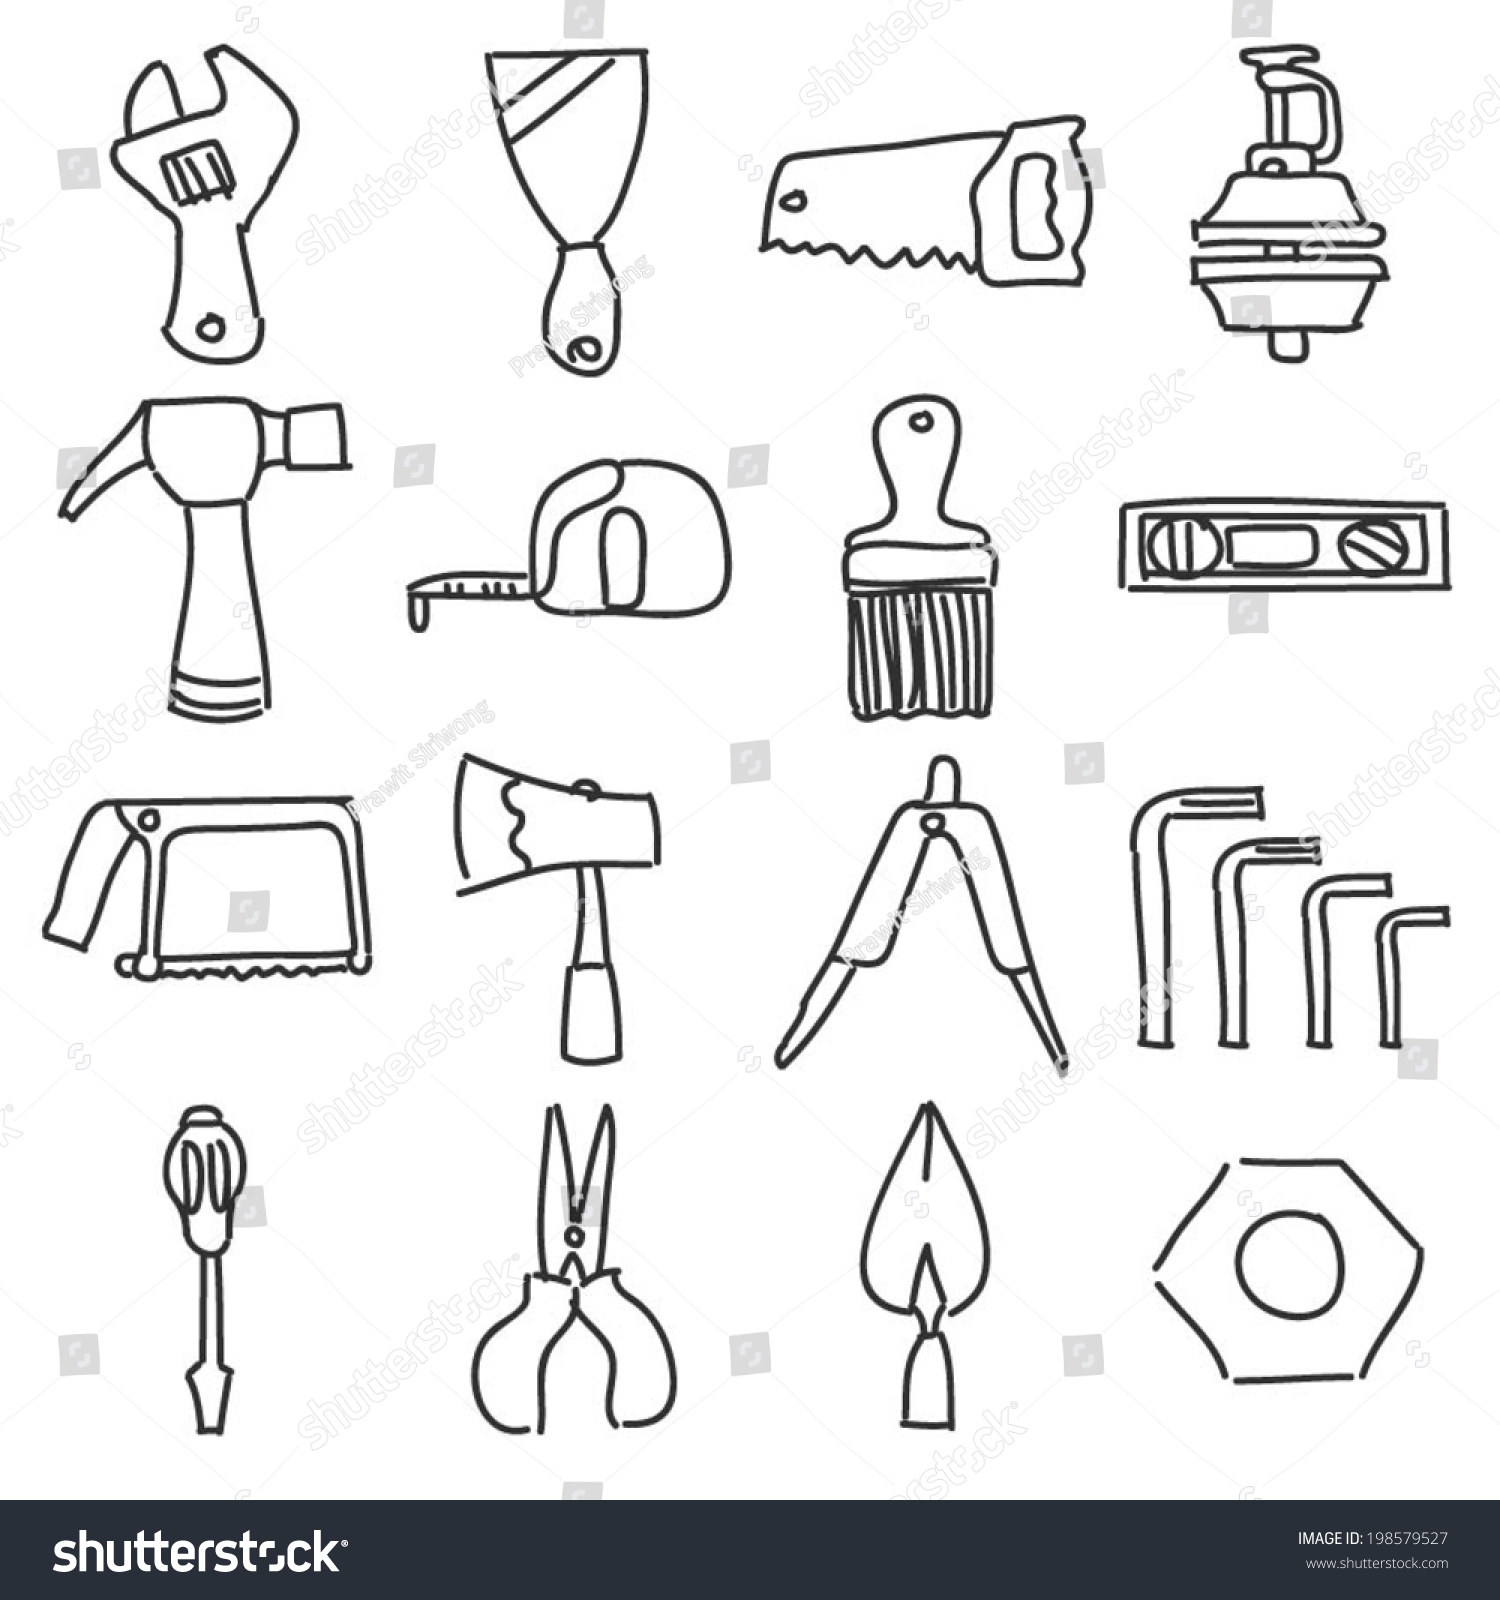 drawing tools homemade hand tools equipment icon line drawing stock vector royalty free